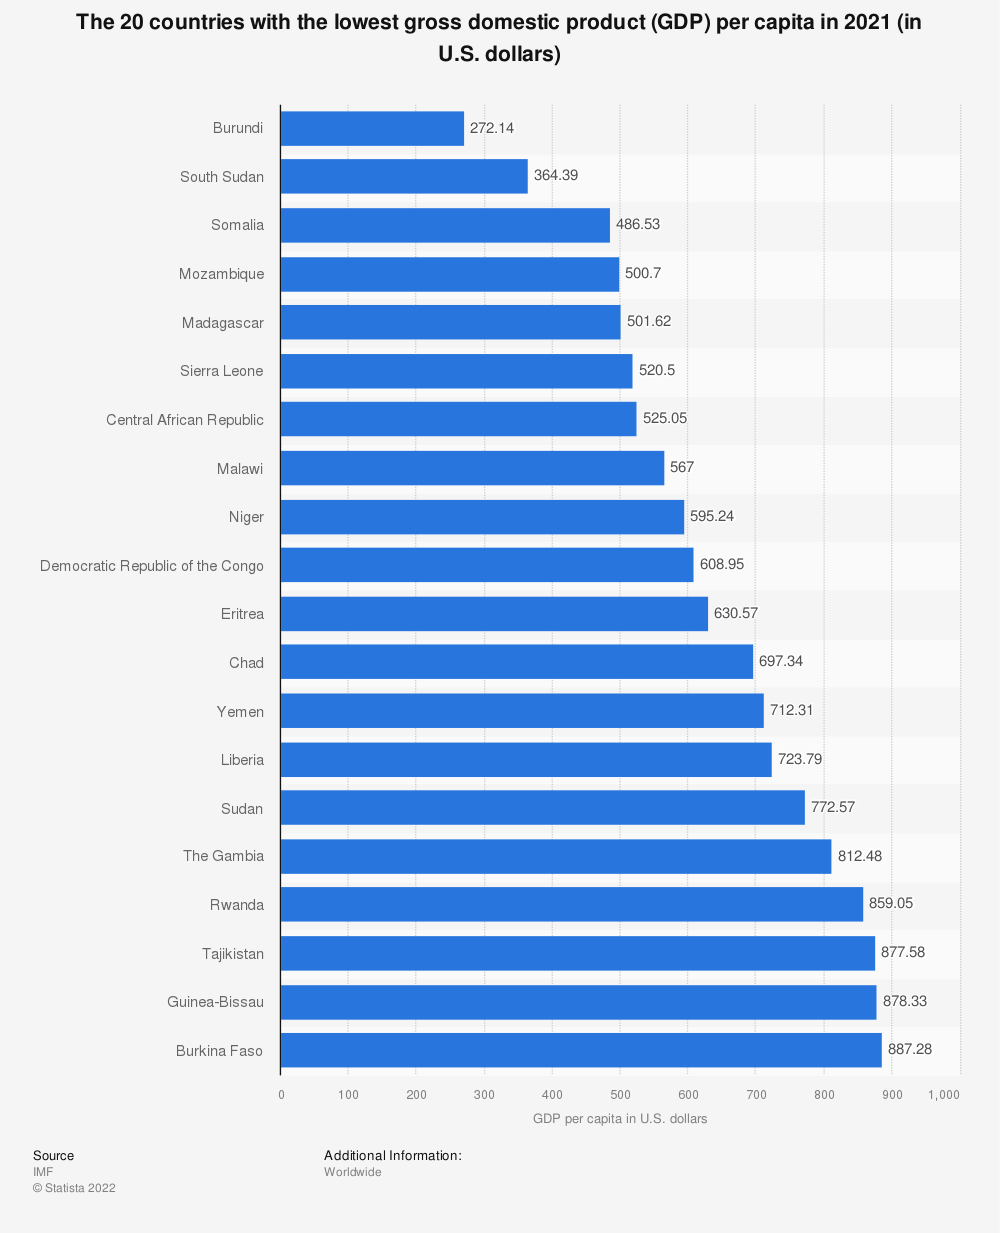 Top Lowest GDP Countries Statista - Top 20 poorest countries in the world 2015